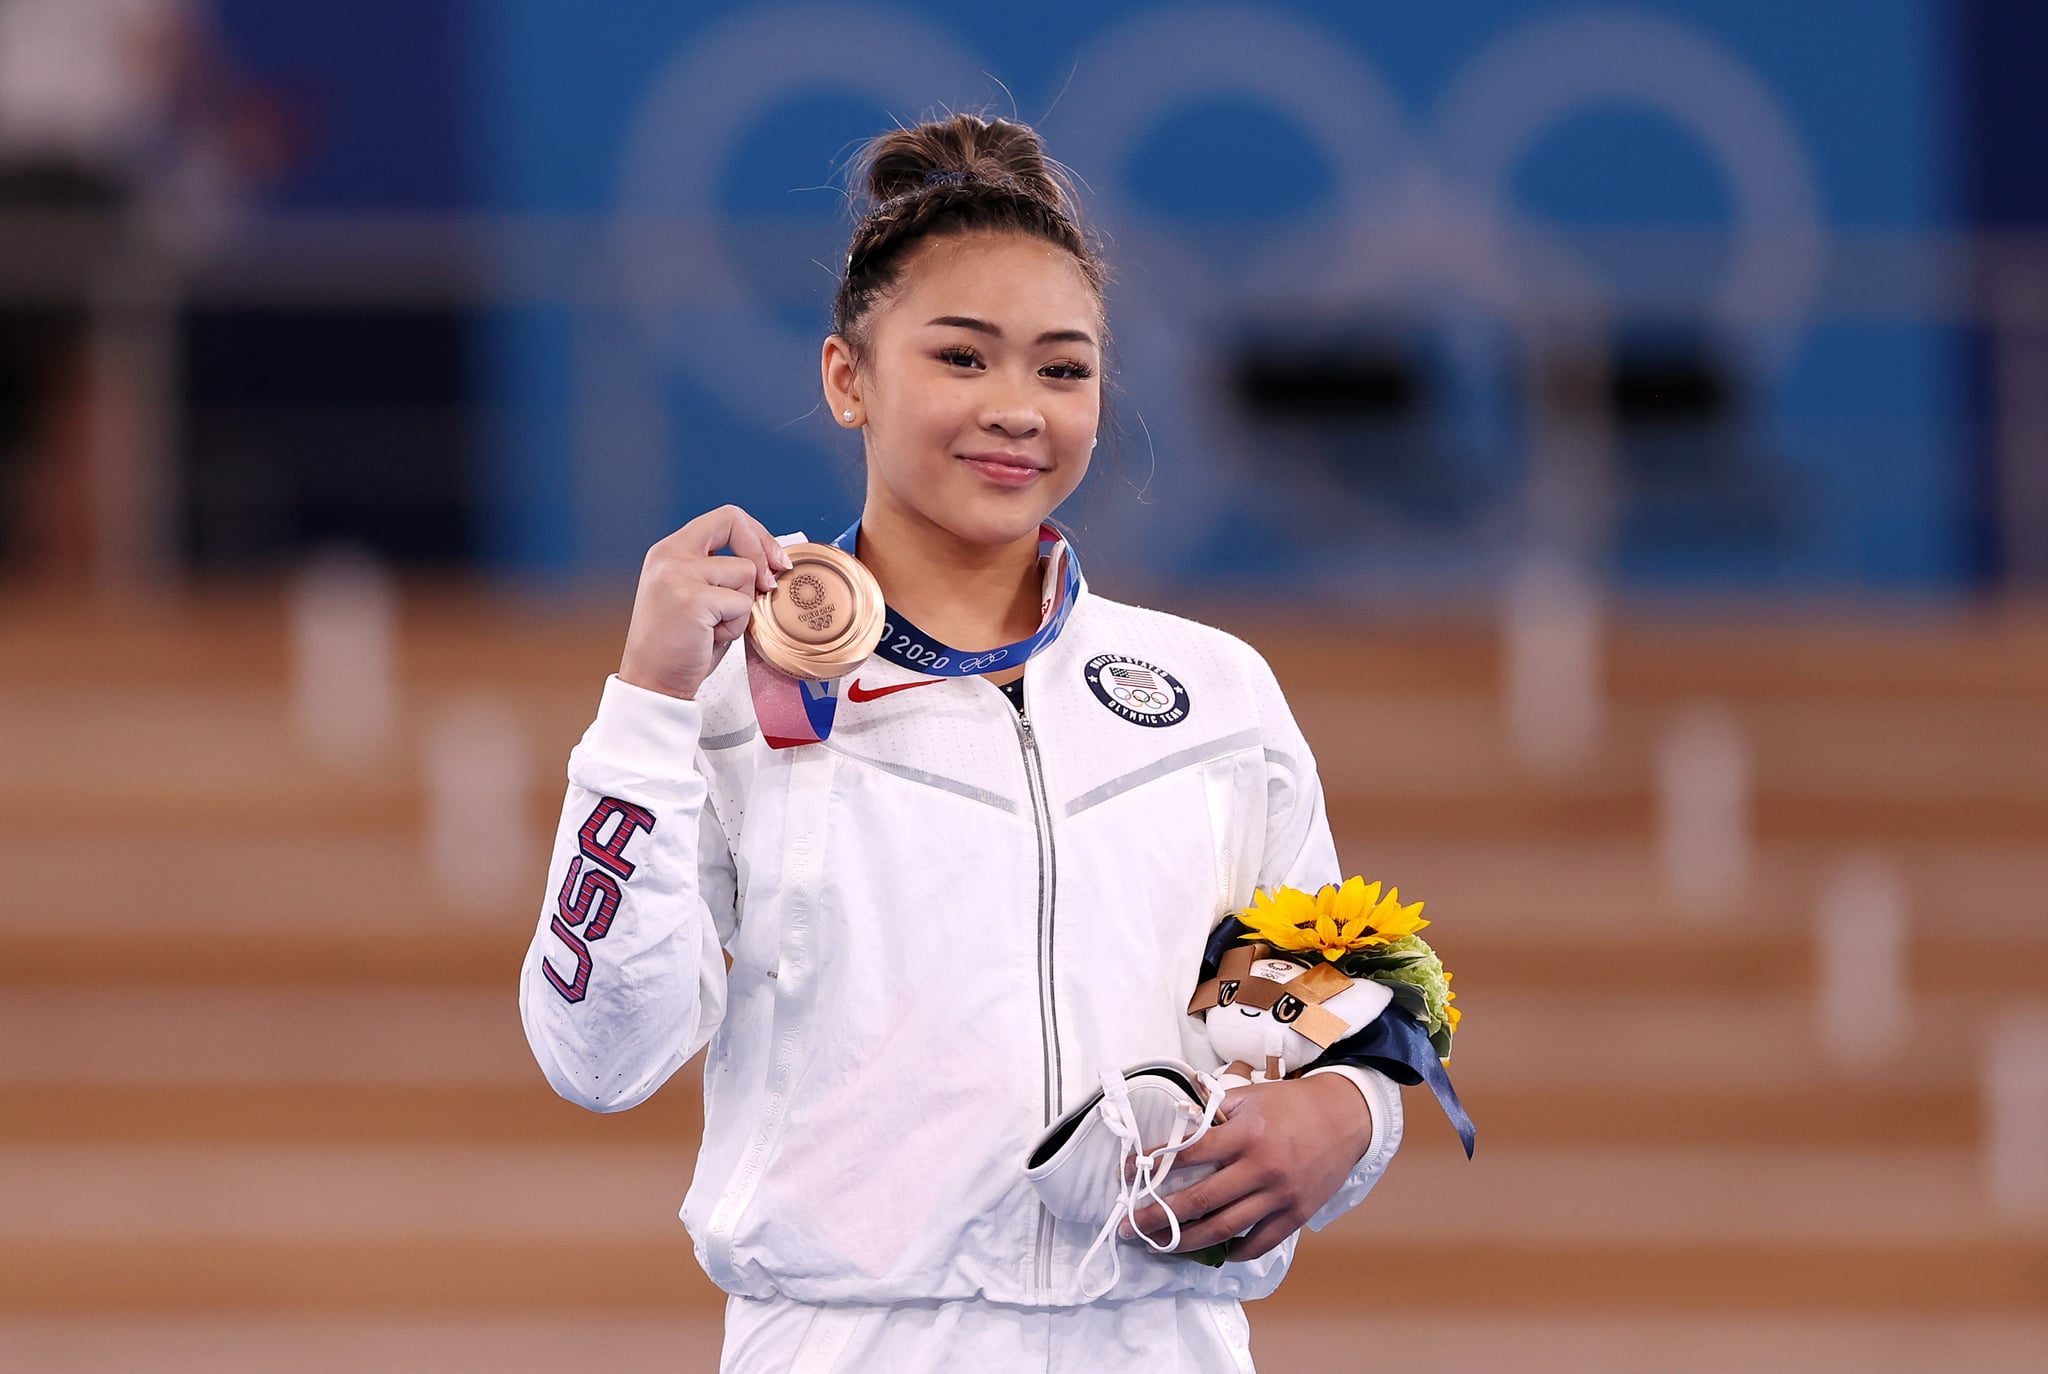 TOKYO, JAPAN - AUGUST 01: Bronze Medalist Sunisa Lee of Team United States poses with her medal on the podium during the Women's Uneven Bars Final medal ceremony on day nine of the Tokyo 2020 Olympic Games at Ariake Gymnastics Centre on August 01, 2021 in Tokyo, Japan. (Photo by Laurence Griffiths/Getty Images)